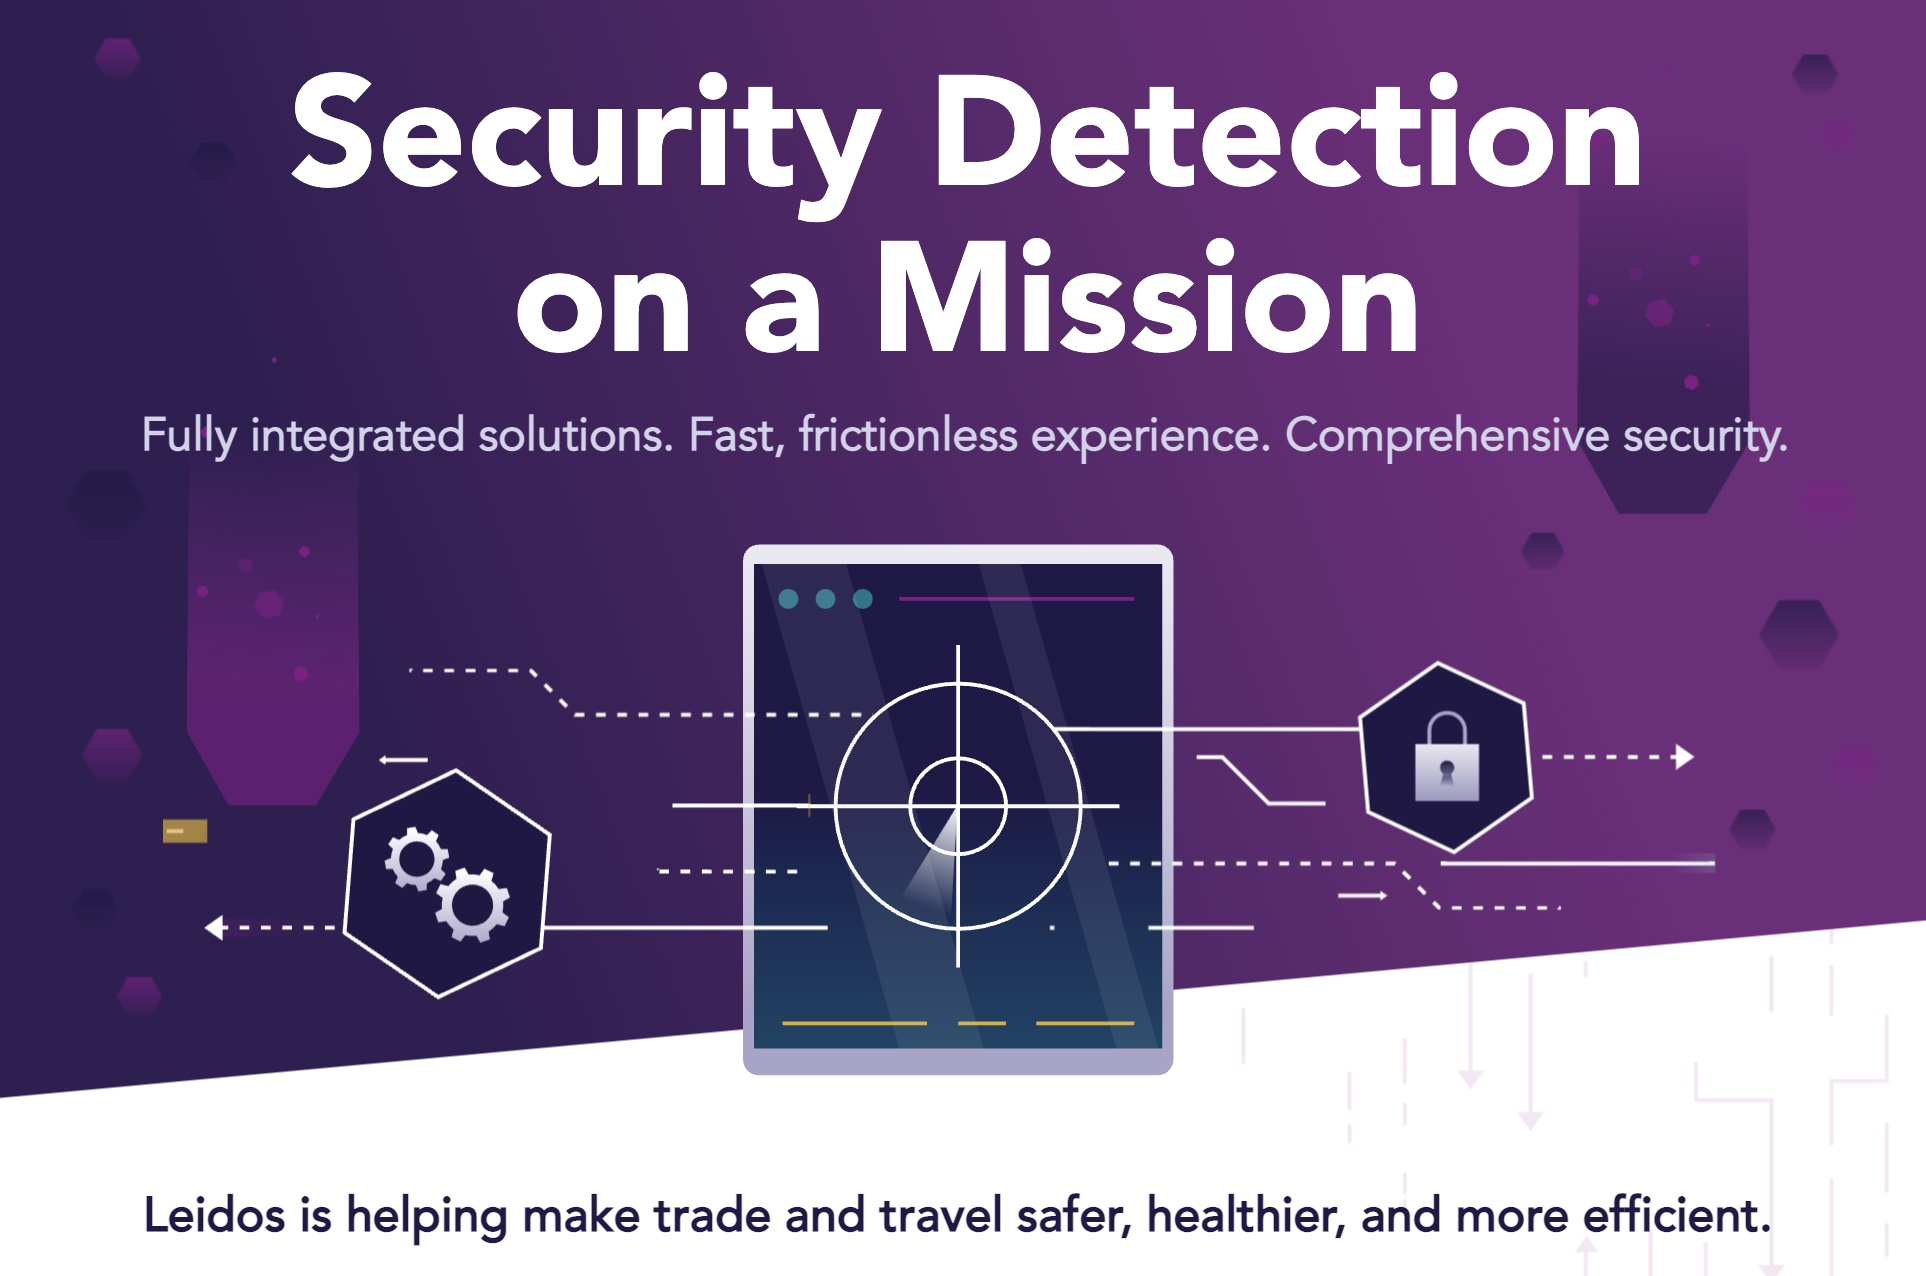 Security Detection on a Mission